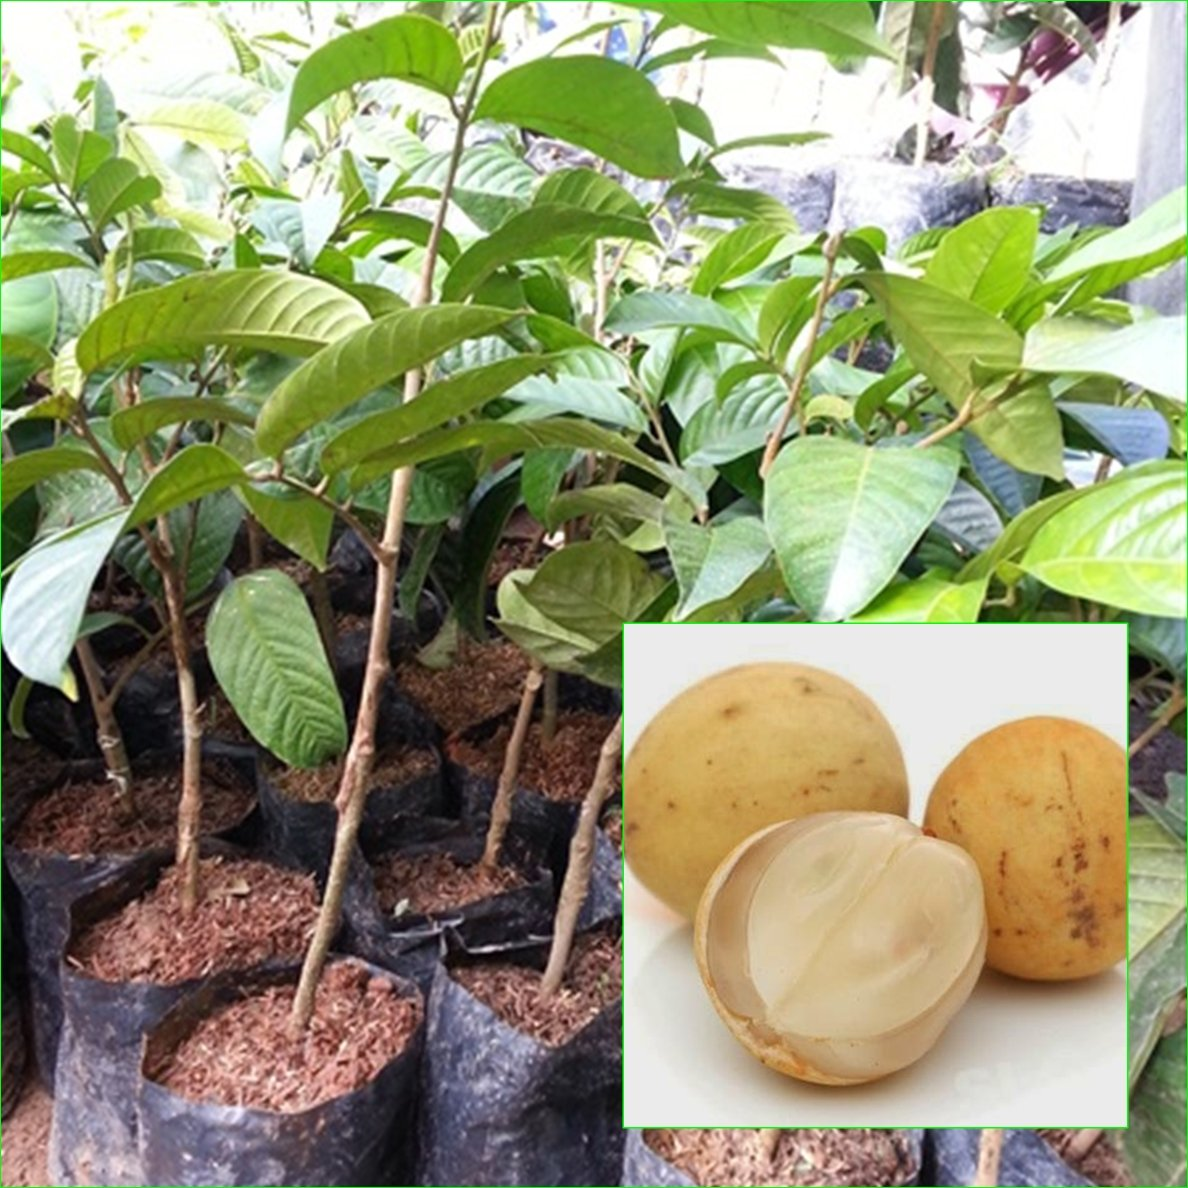 2 Thai Longkong grafted Tree Tropical Plant 18'' Tall Aglaia dookkoo Lansium Domesticum Direct from Thailand Free Phytosanitary Cert.